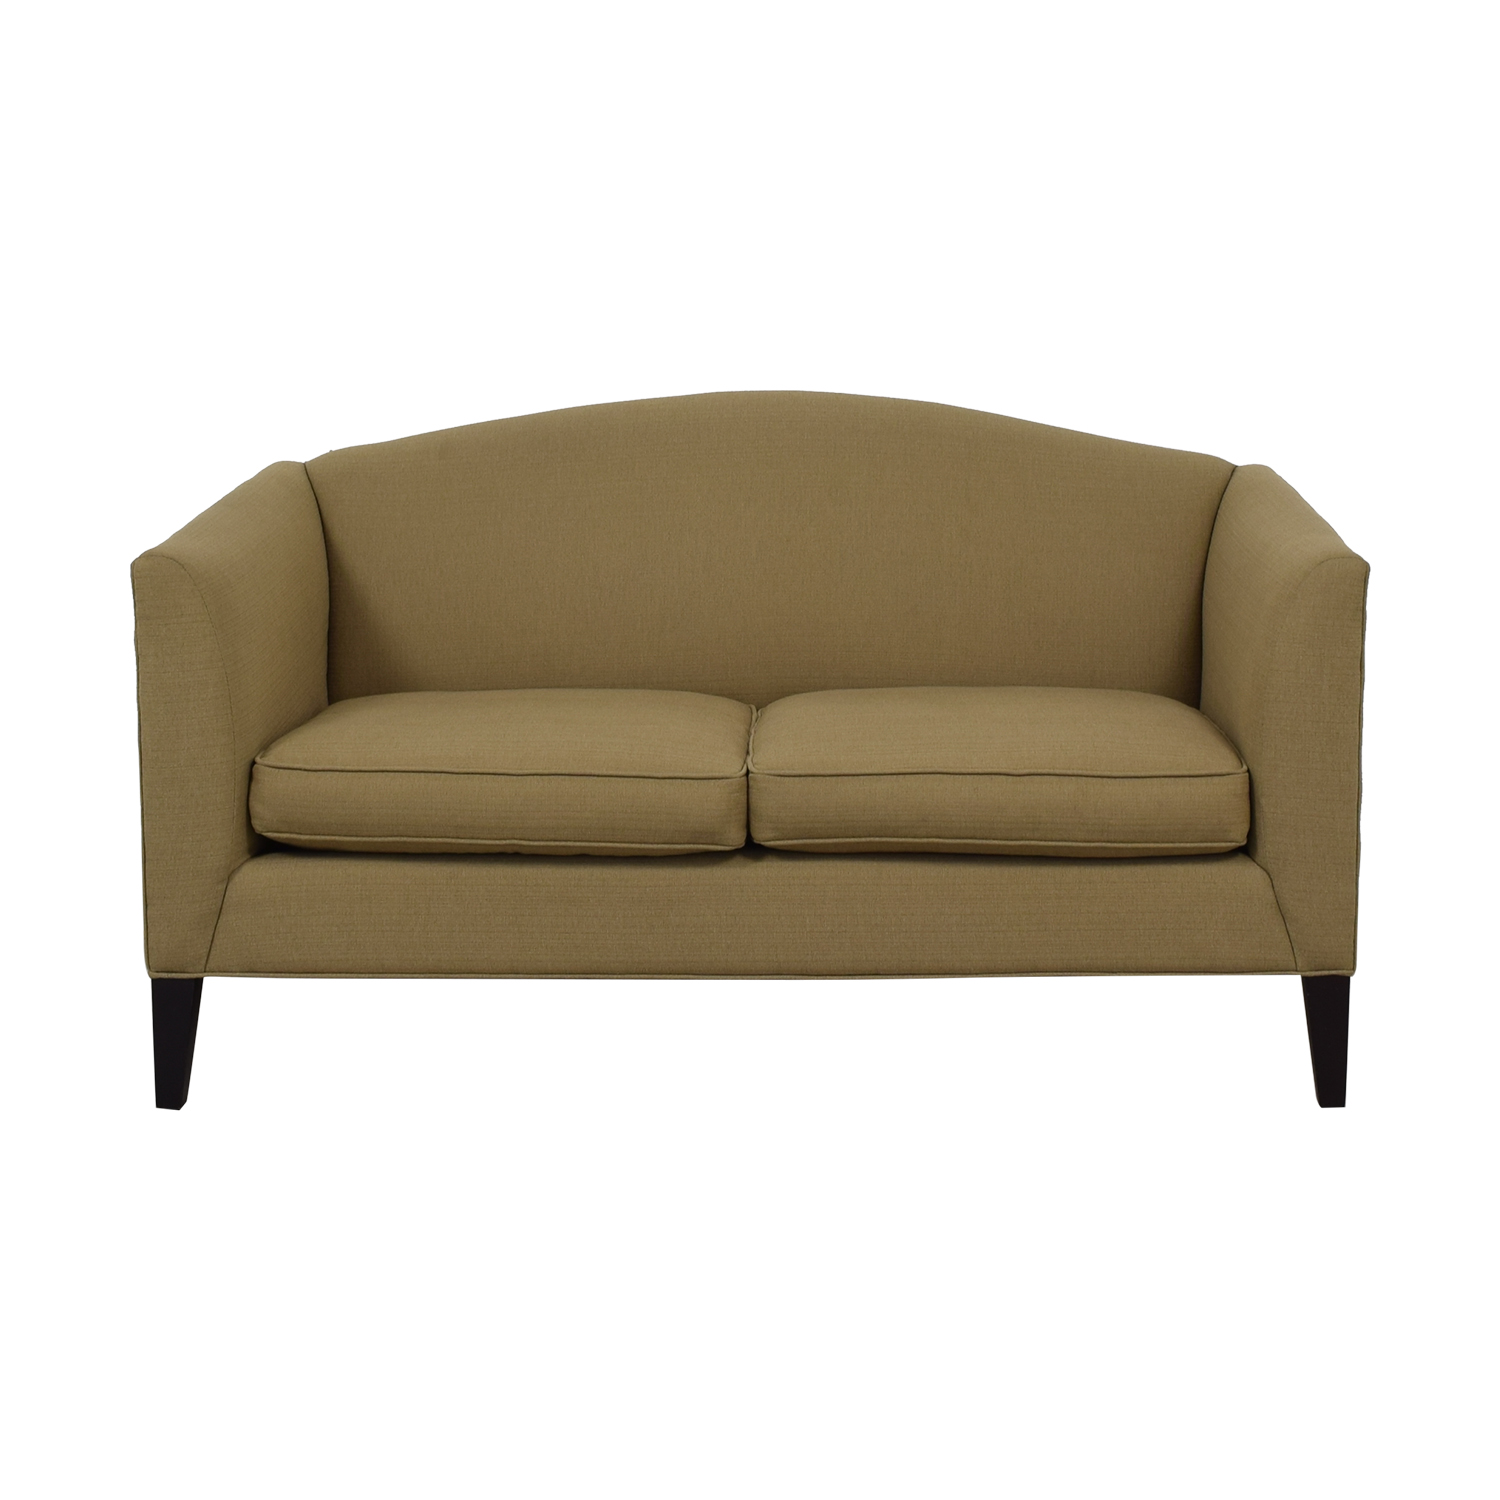 Room & Board Room & Board Flanagan Beige Two-Cushion Sofa Classic Sofas